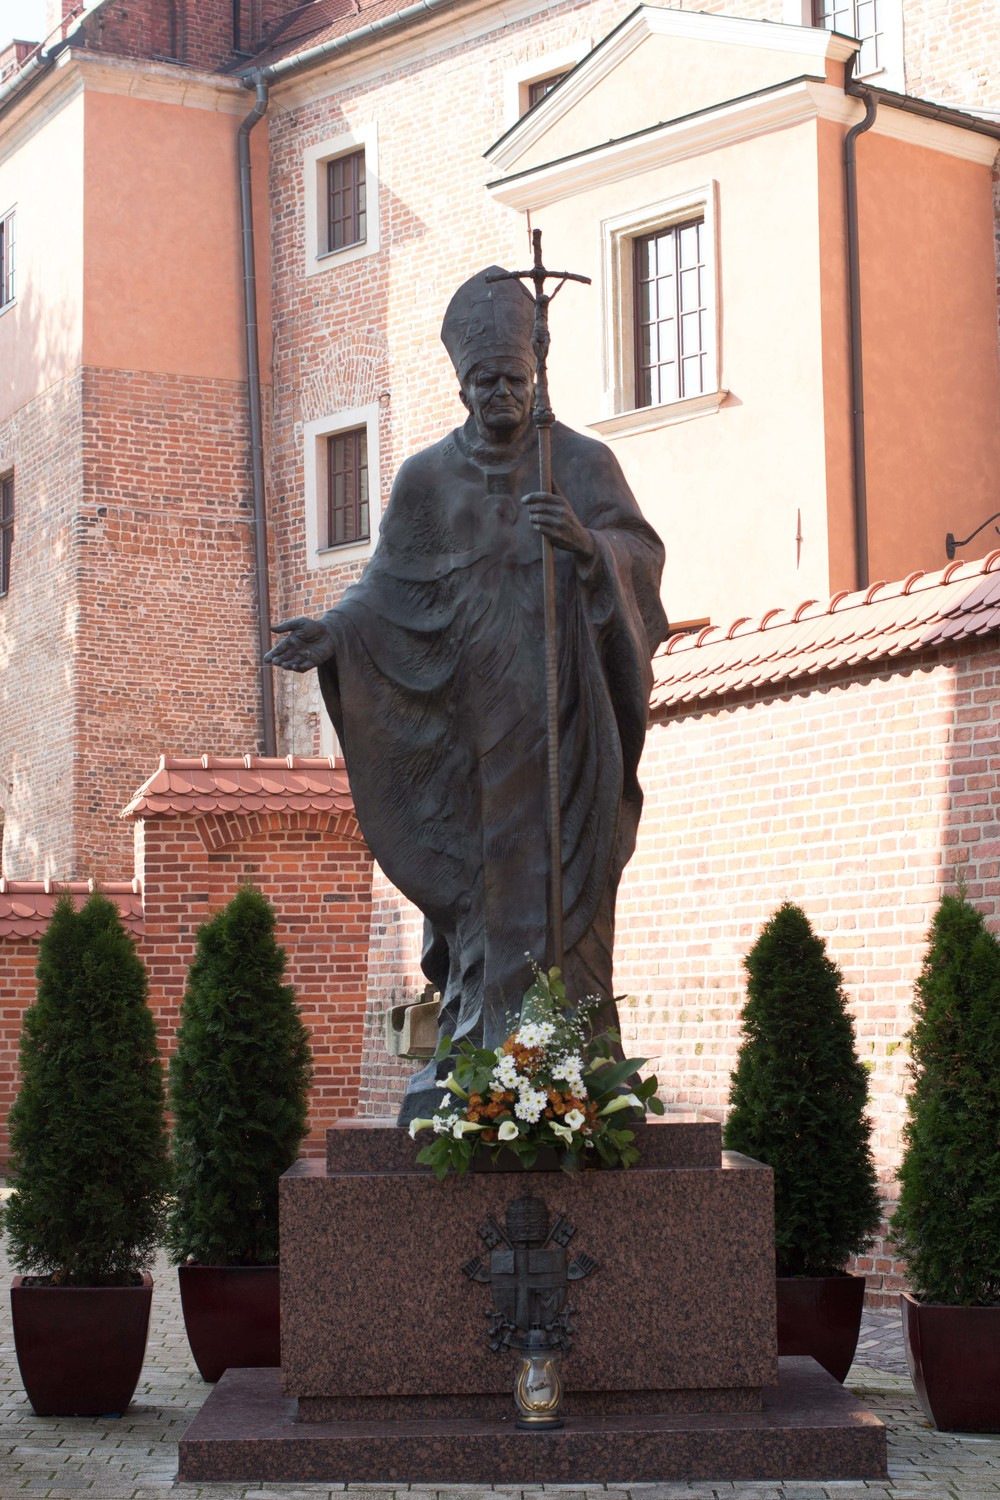 St. John Paul II was born and lived not far from Krakow, and Poland has a strong Catholic tradition, so his likeness is everywhere.